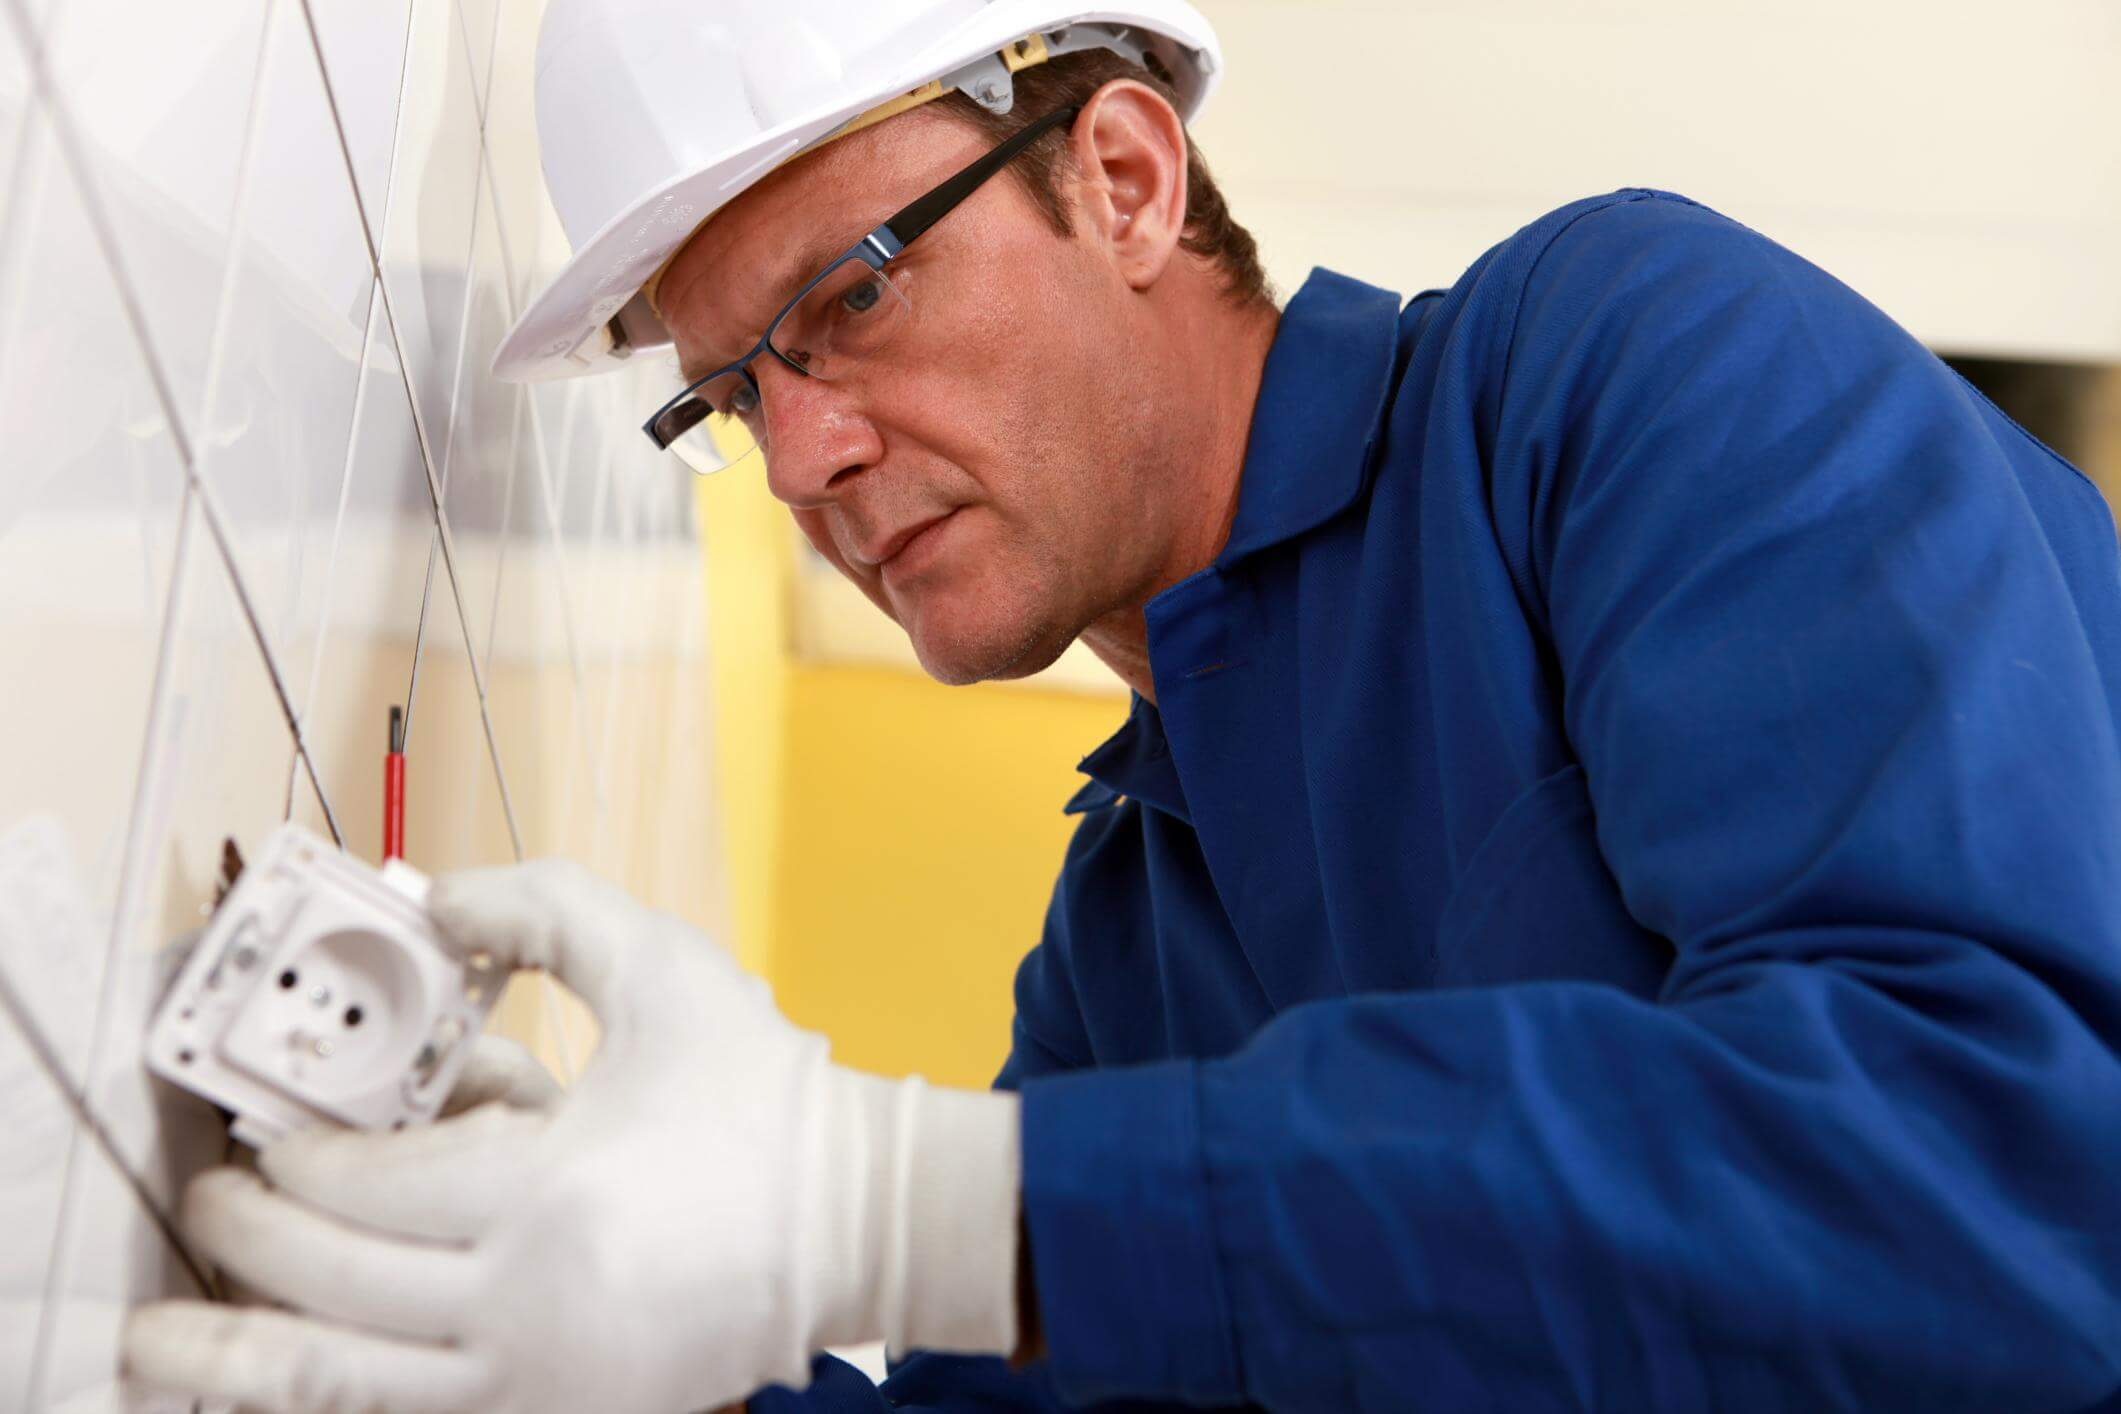 Senior electrician with glasses diligently installing a power socket